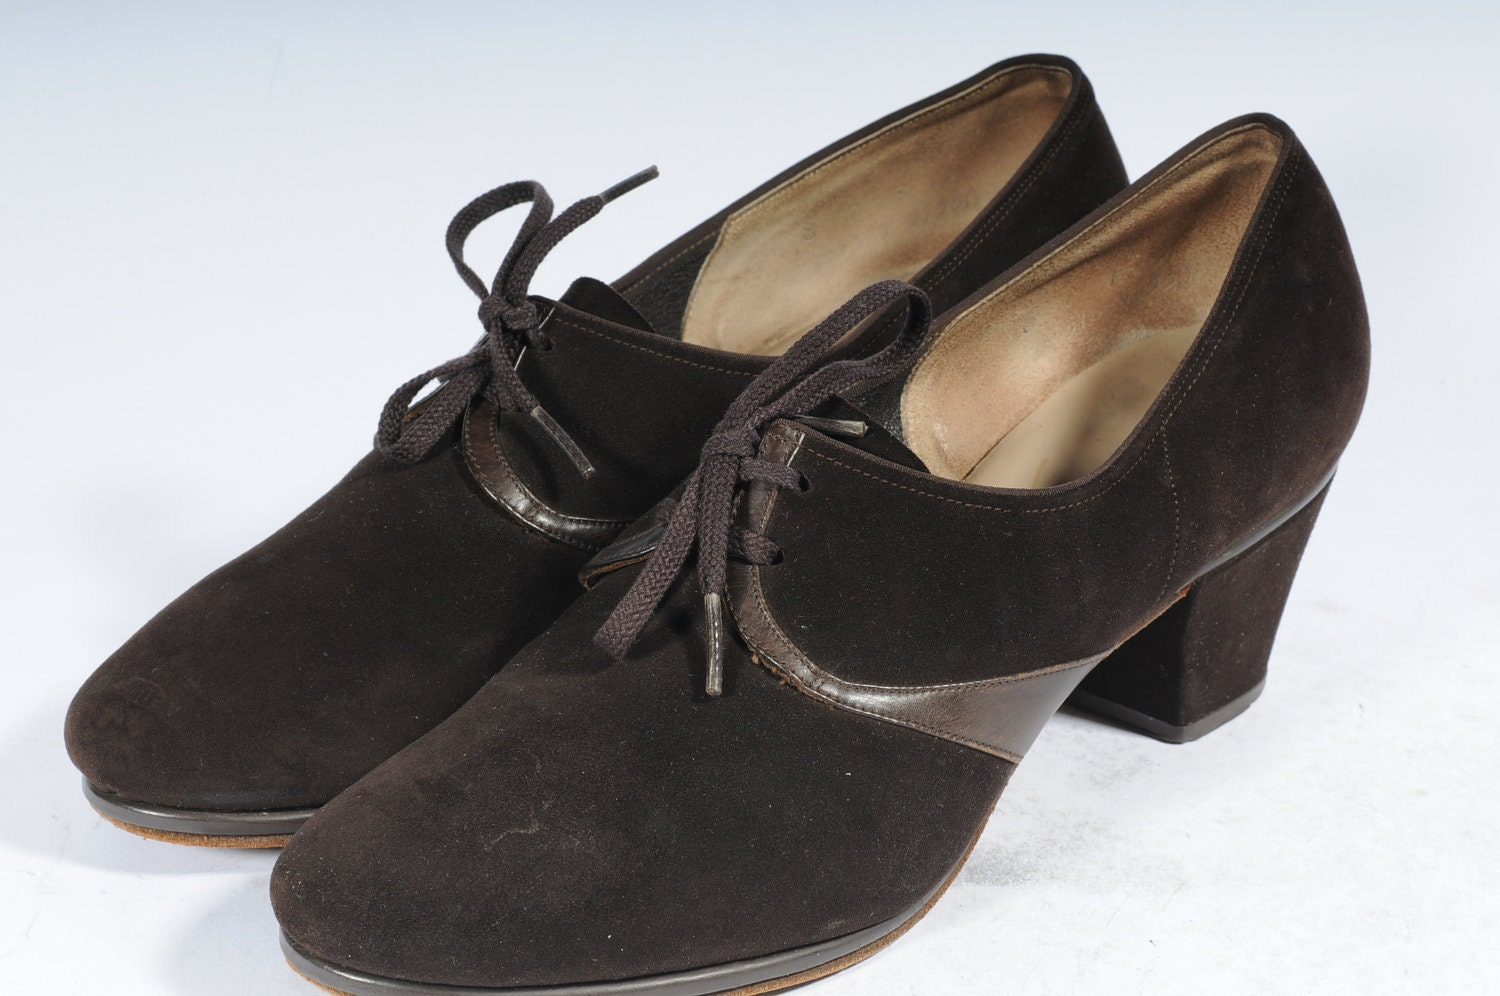 Awesome 1940s Strappy Black Women39s Shoes FREE SHIPPING By Inventivodesign